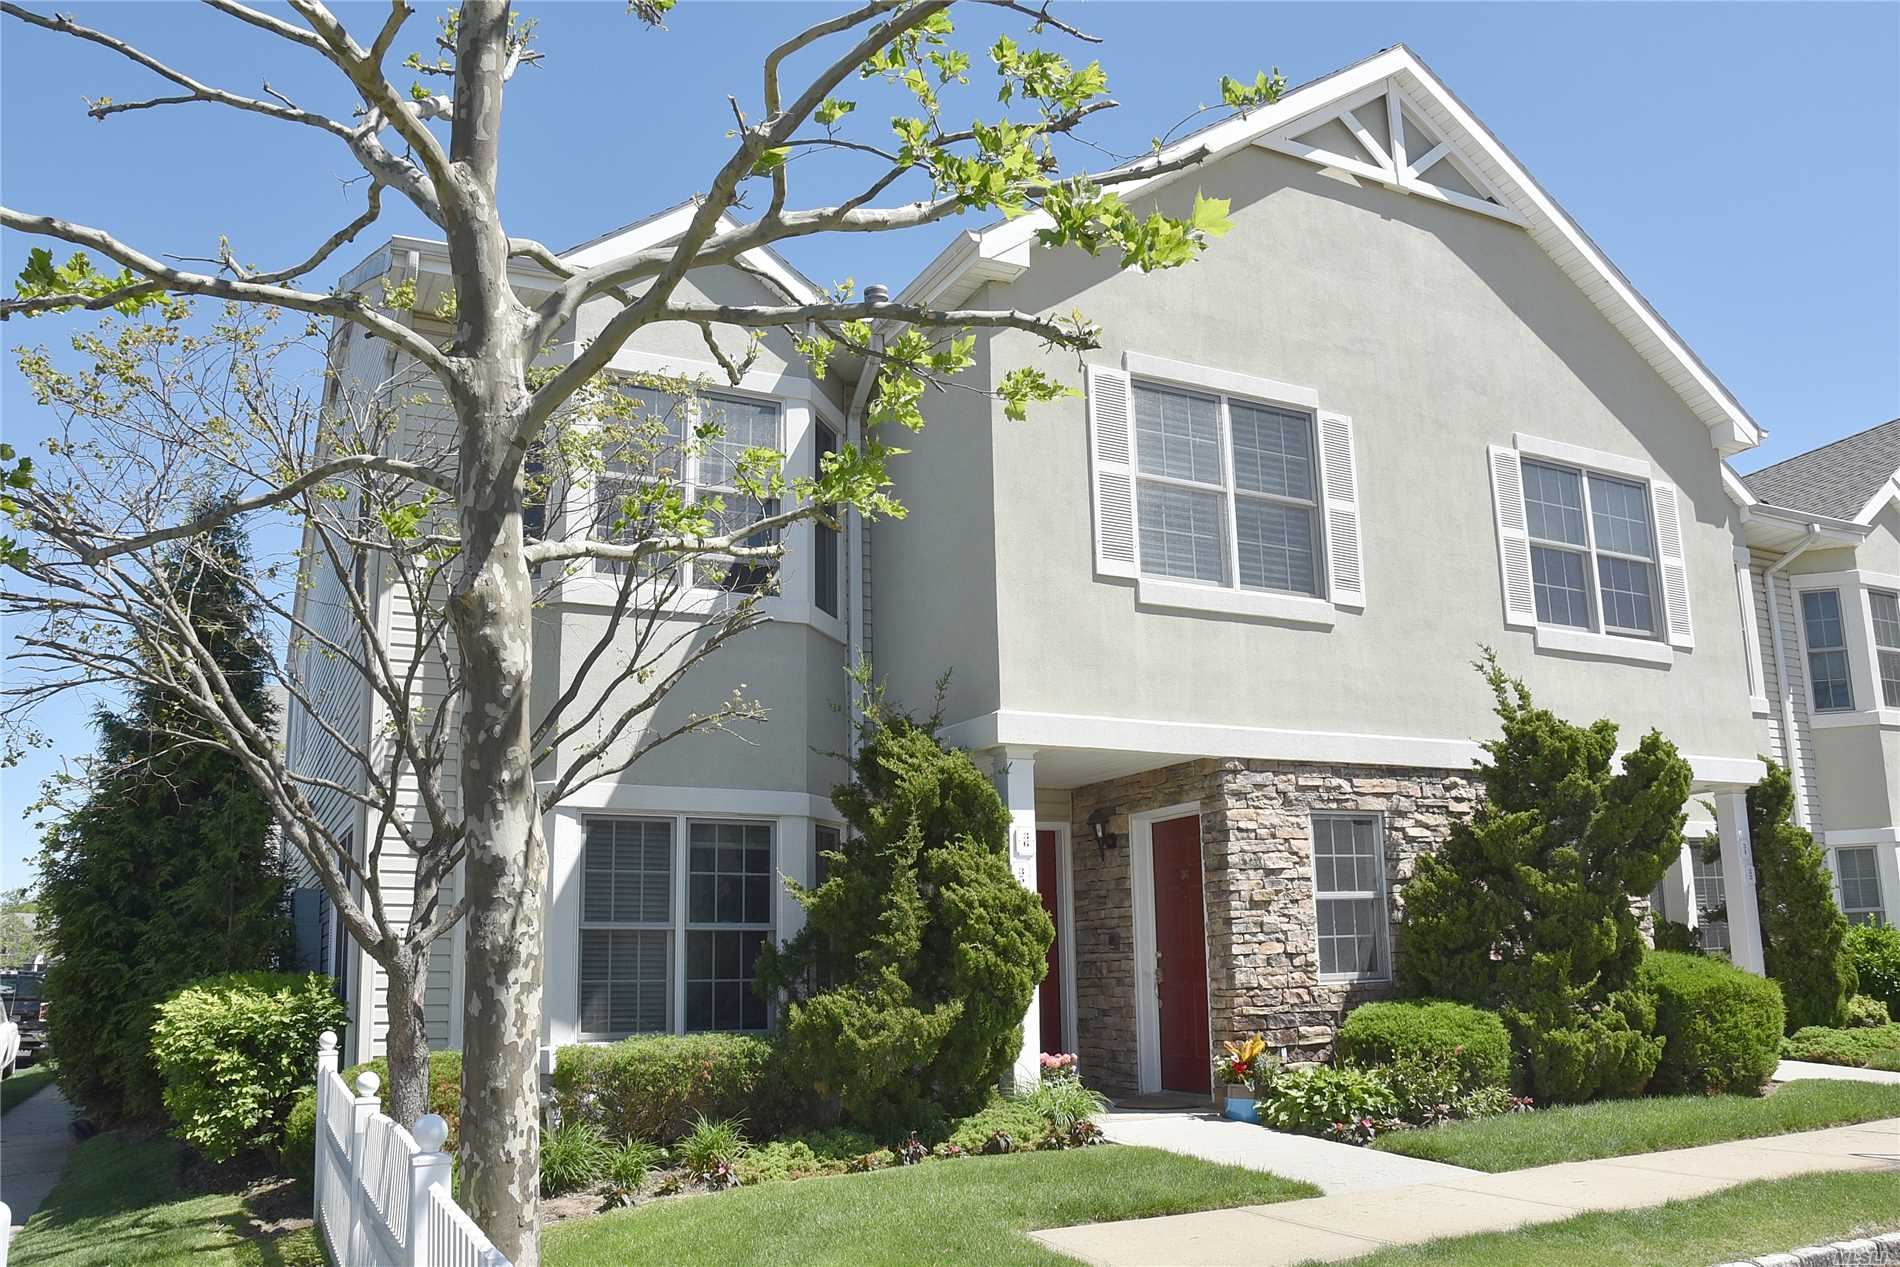 Bright, sun-filled second floor corner unit in beautiful Mill Pond Estates! Two large bedrooms with two baths; large living/dining area with fireplace and hardwood floors. Lovely kitchen; full size washer/dryer and closets galore! Sliders to a private terrace out back. Amazing location minutes from shops, restaurants and the bay. Jitney to to L.I.R.R. Clubhouse with indoor pool; card room; large meeting room; catering kitchen; fitness room; library and more! Over-55 living at its finest!